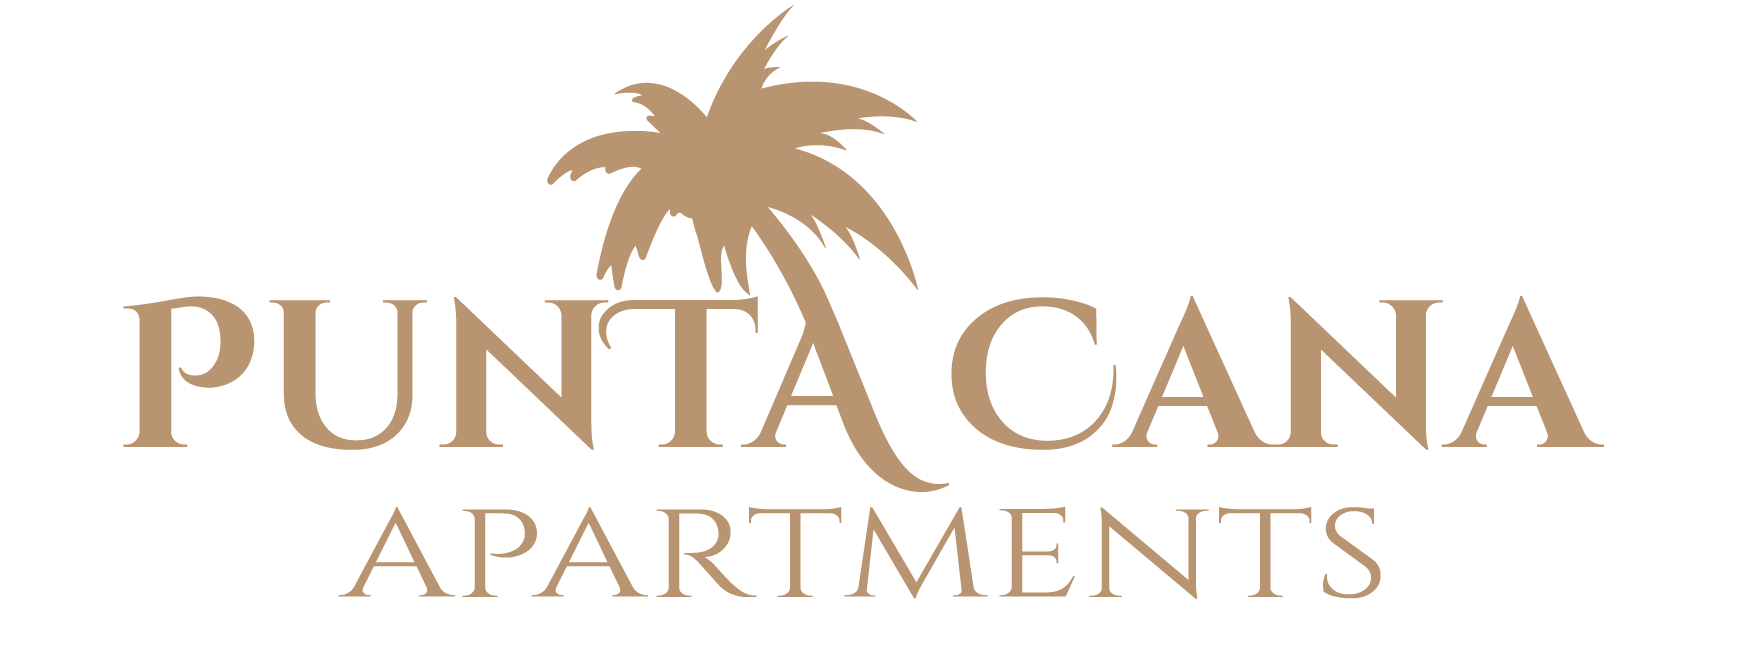 Punta Cana Apartments